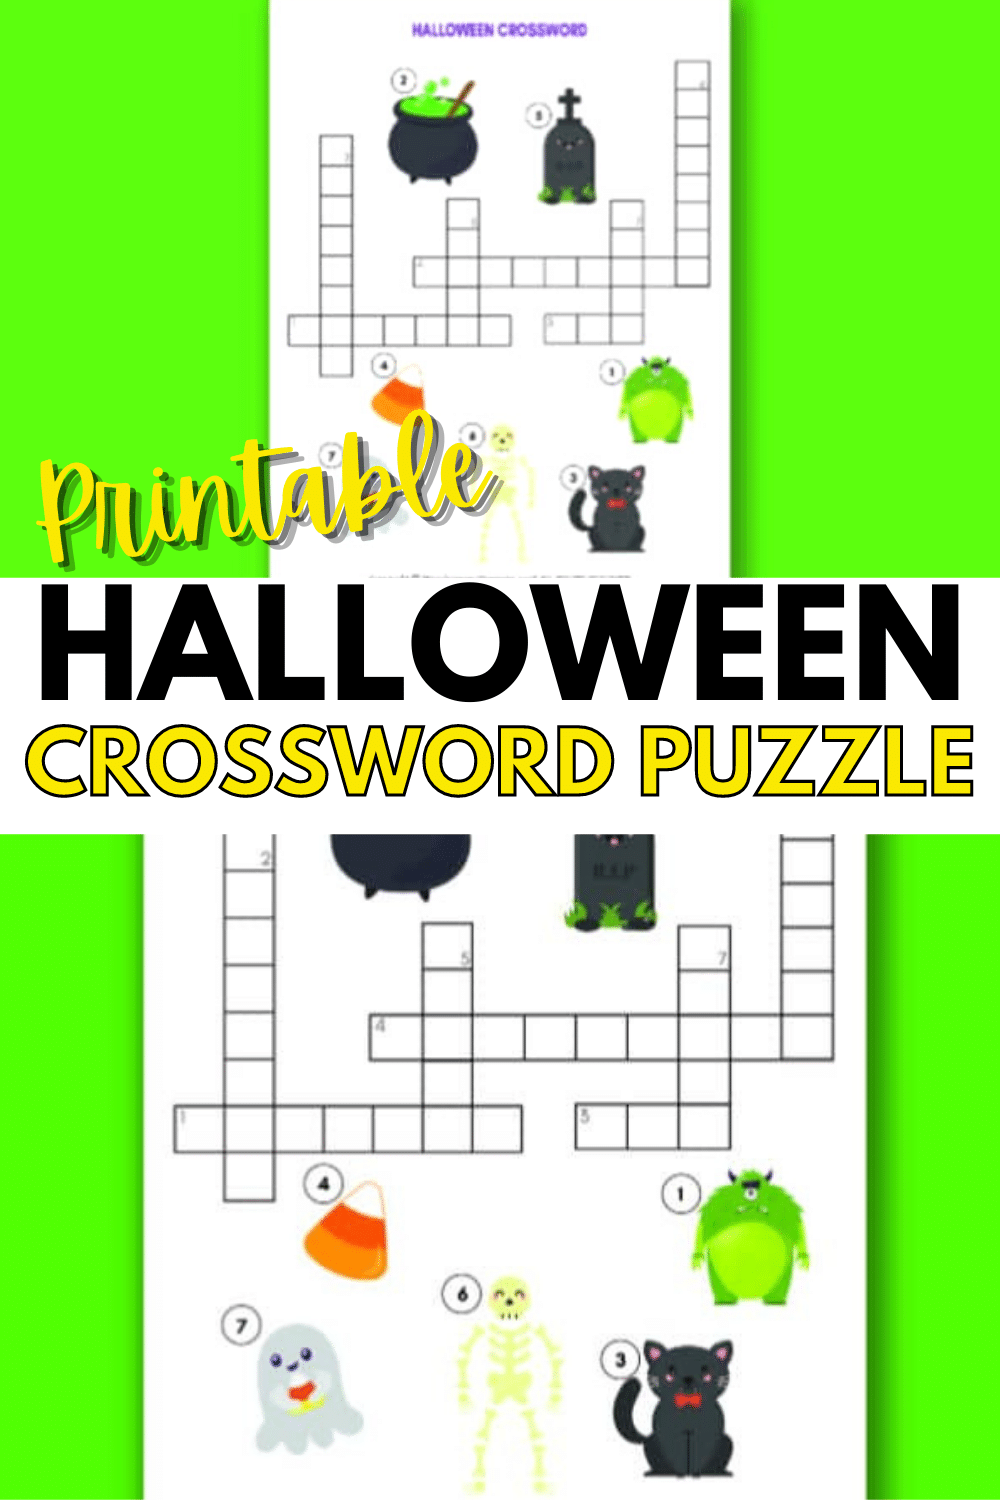 A printable Halloween crossword puzzle is great for school, fall parties or just for fun at home. Crossword puzzles are a great activity for kids. #crosswordpuzzle #halloween #printables via @wondermomwannab